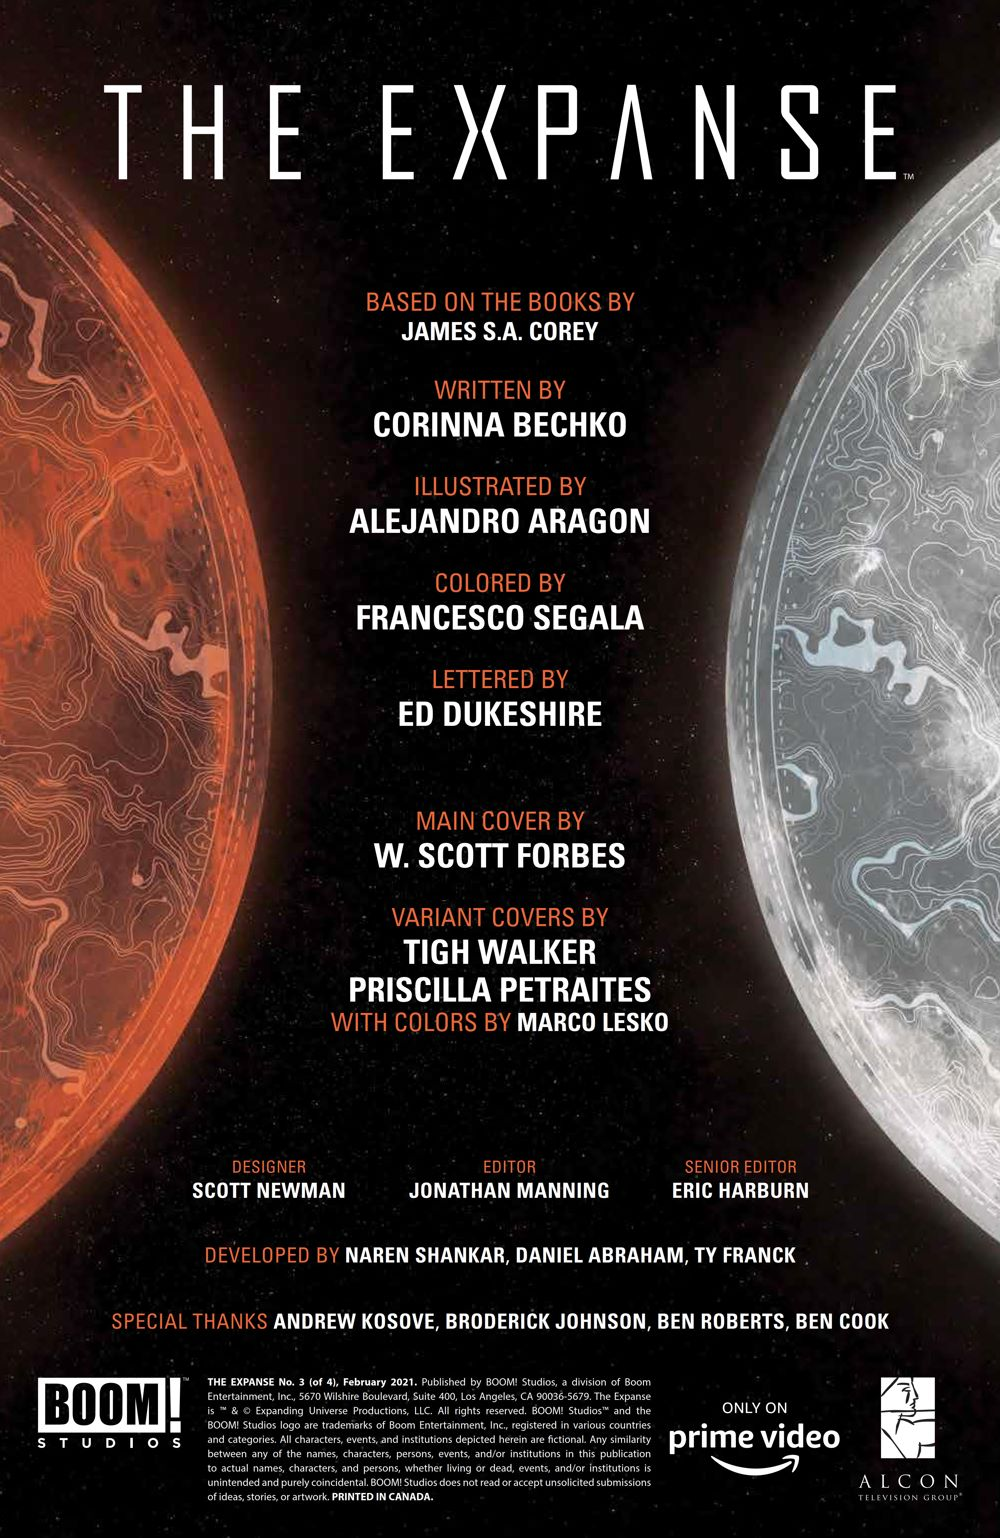 Expanse_003_PRESS_2 ComicList Previews: THE EXPANSE #3 (OF 4)